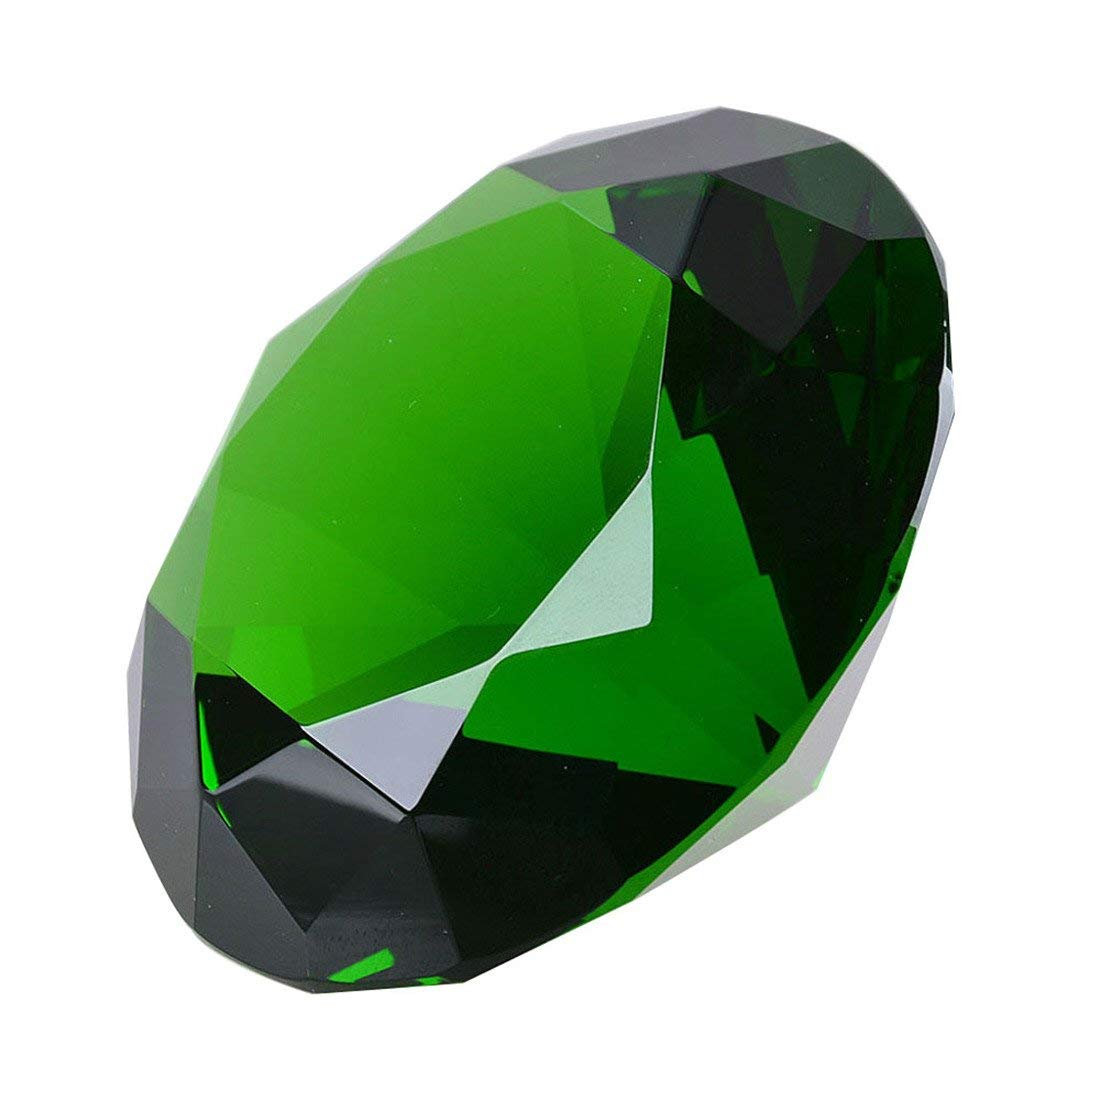 60MM Glass Crystal Diamond Shaped Paperweight,Fake Diamond Jewel Paperweight For Decoration,Green